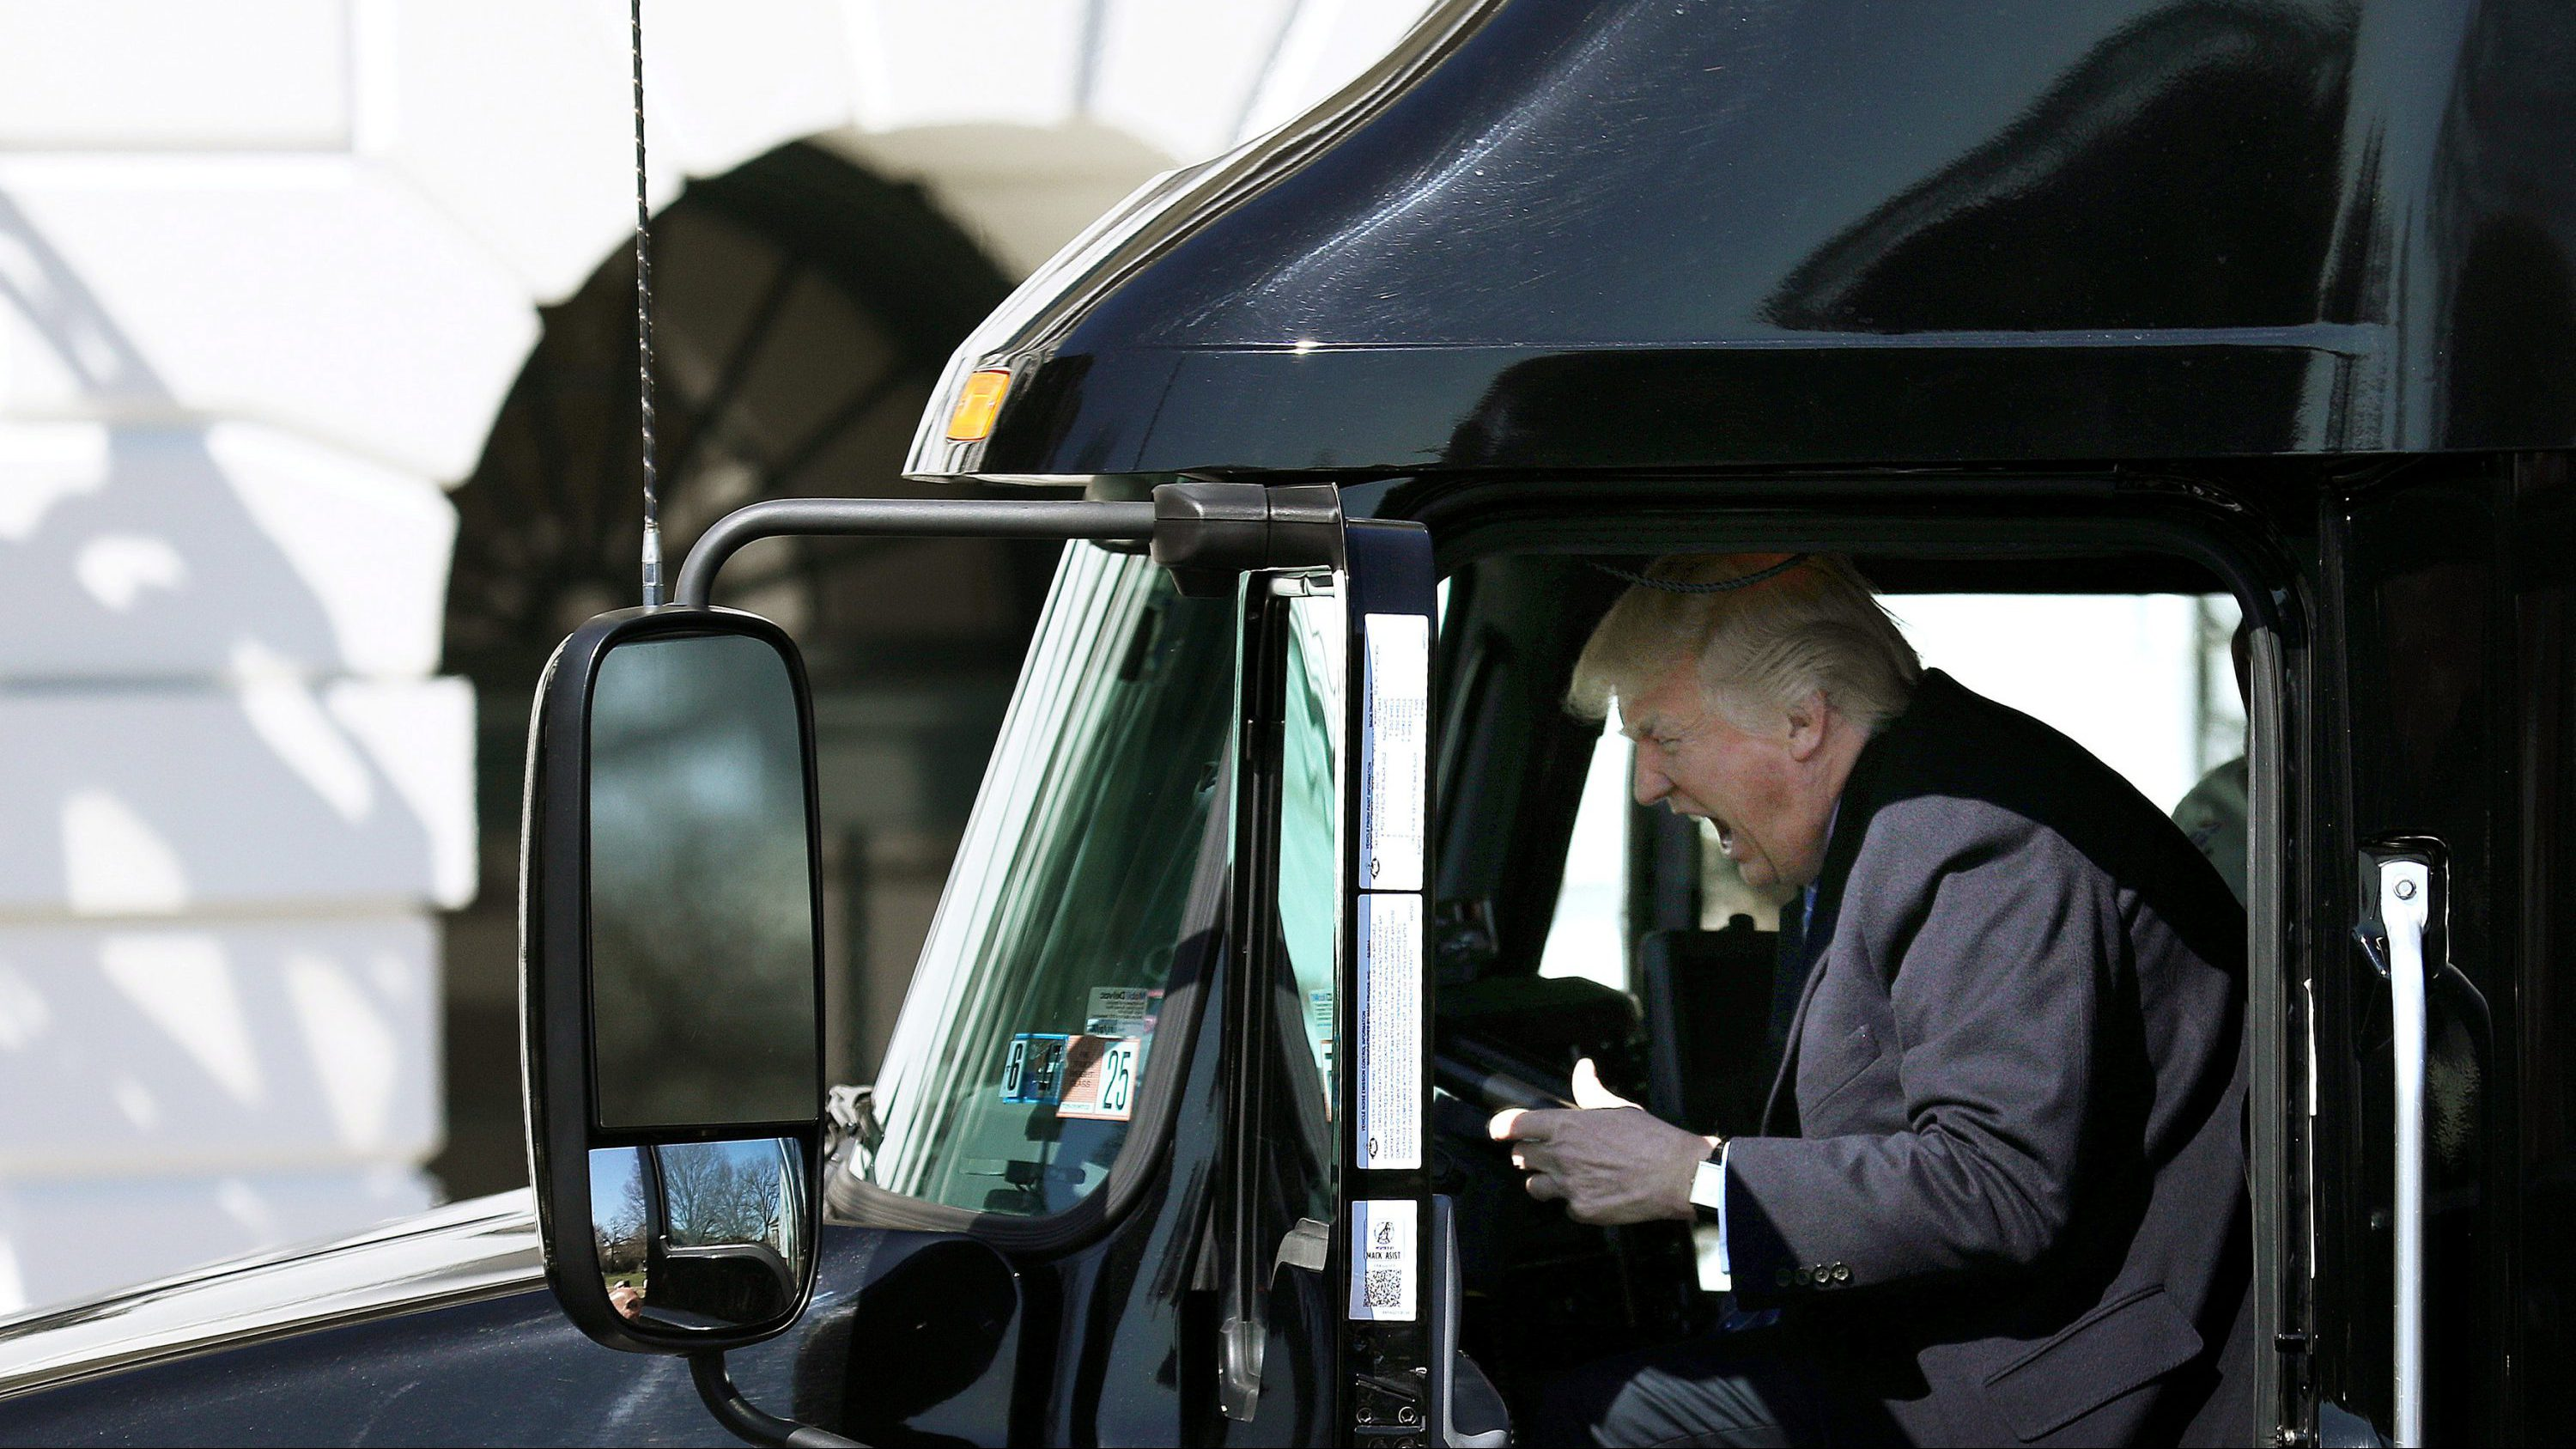 U.S. President Donald Trump reacts as he sits on a truck while he welcomes  truckers and CEOs to attend a meeting regarding healthcare at the White House in Washington, U.S., March 23, 2017.